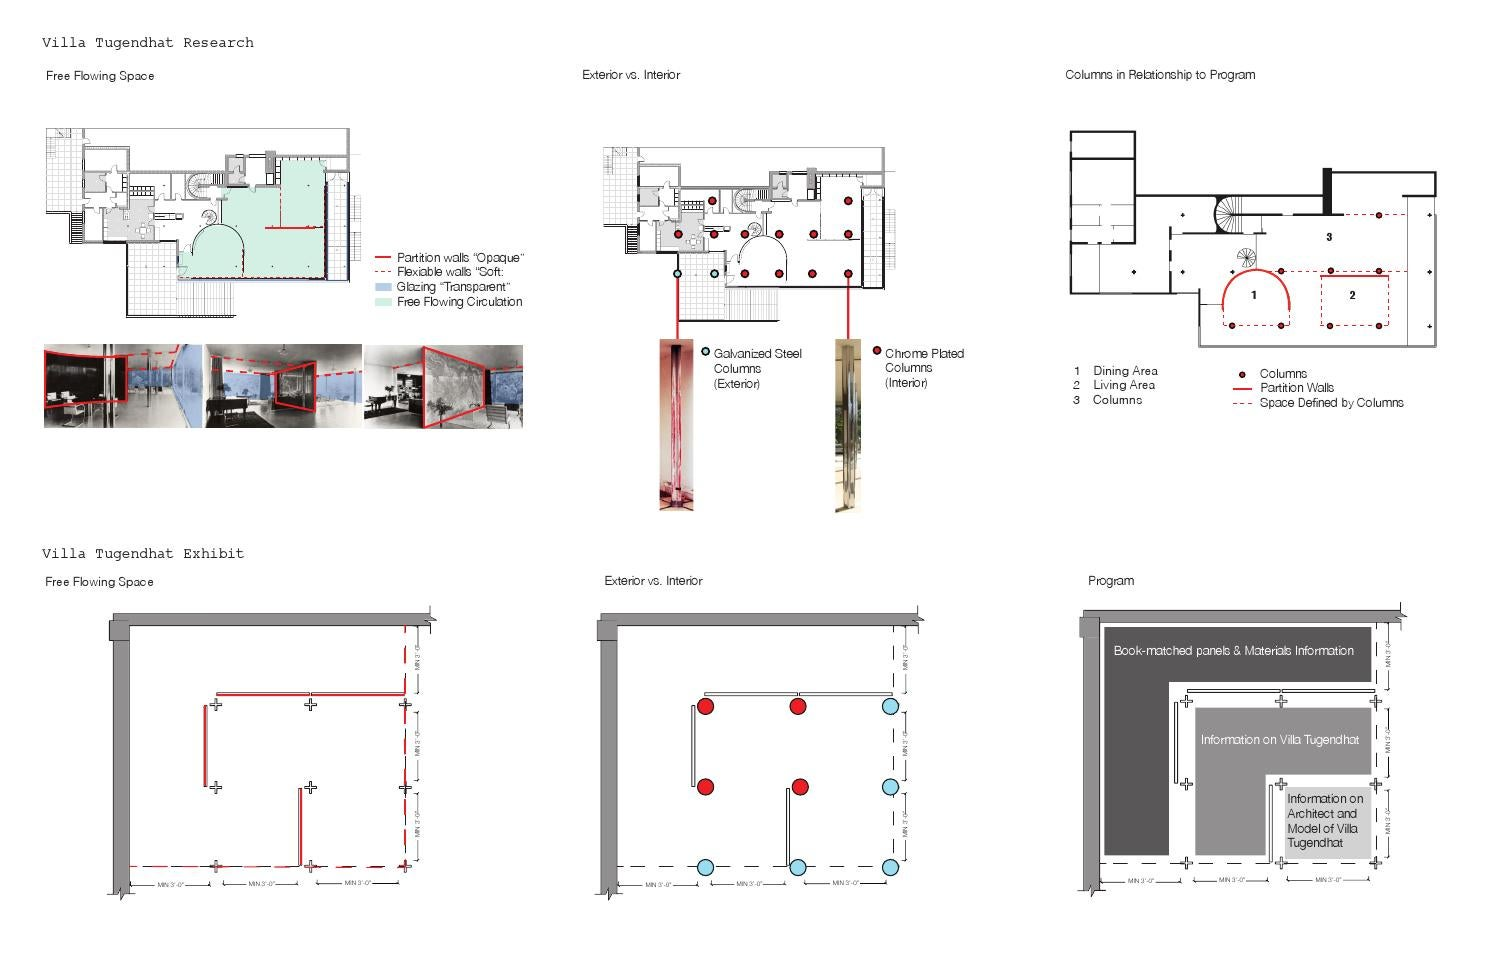 Exhibit villa tungendhat by nicki hwang issuu for The concept of space in mamluk architecture